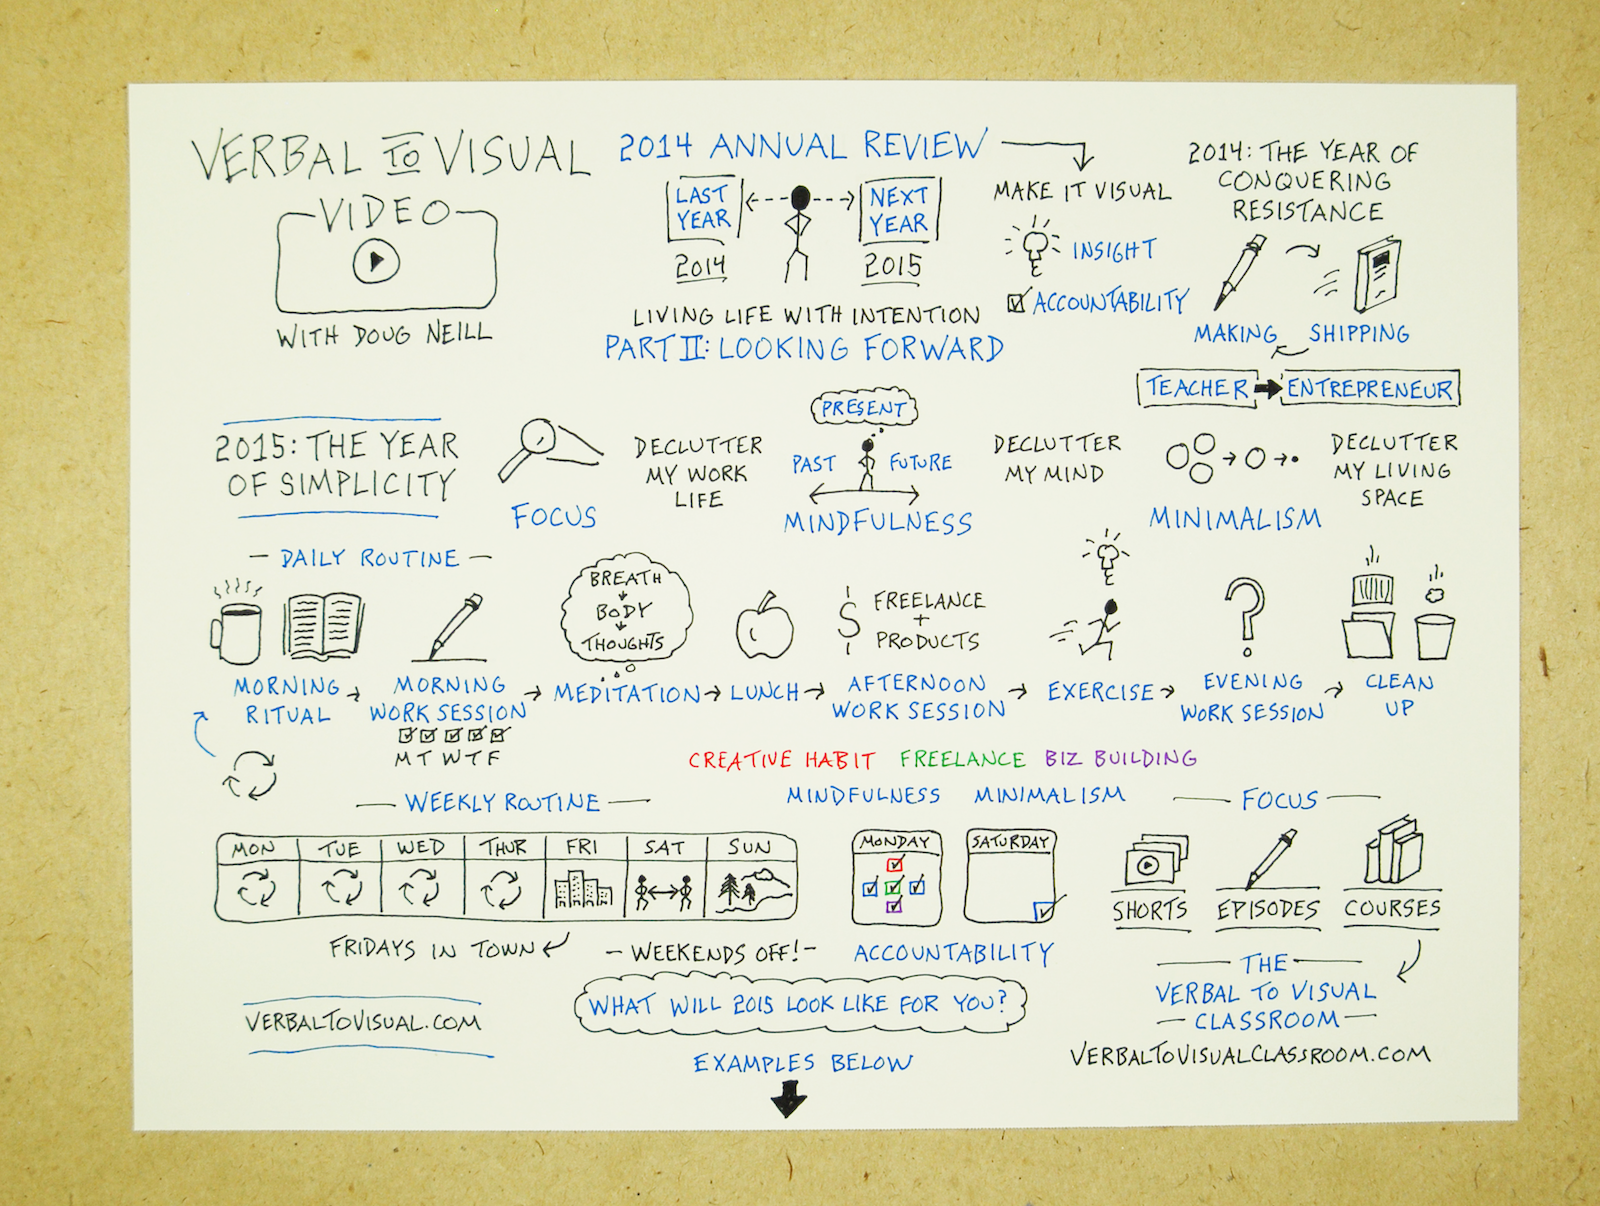 Give Your New Year's Resolution A Boost: Make It Visual - Annual Review Process Part 2: Looking Forward, verbal to visual, sketchnoting, visual note-taking, doodling, goals, accountability, routines, doug neill